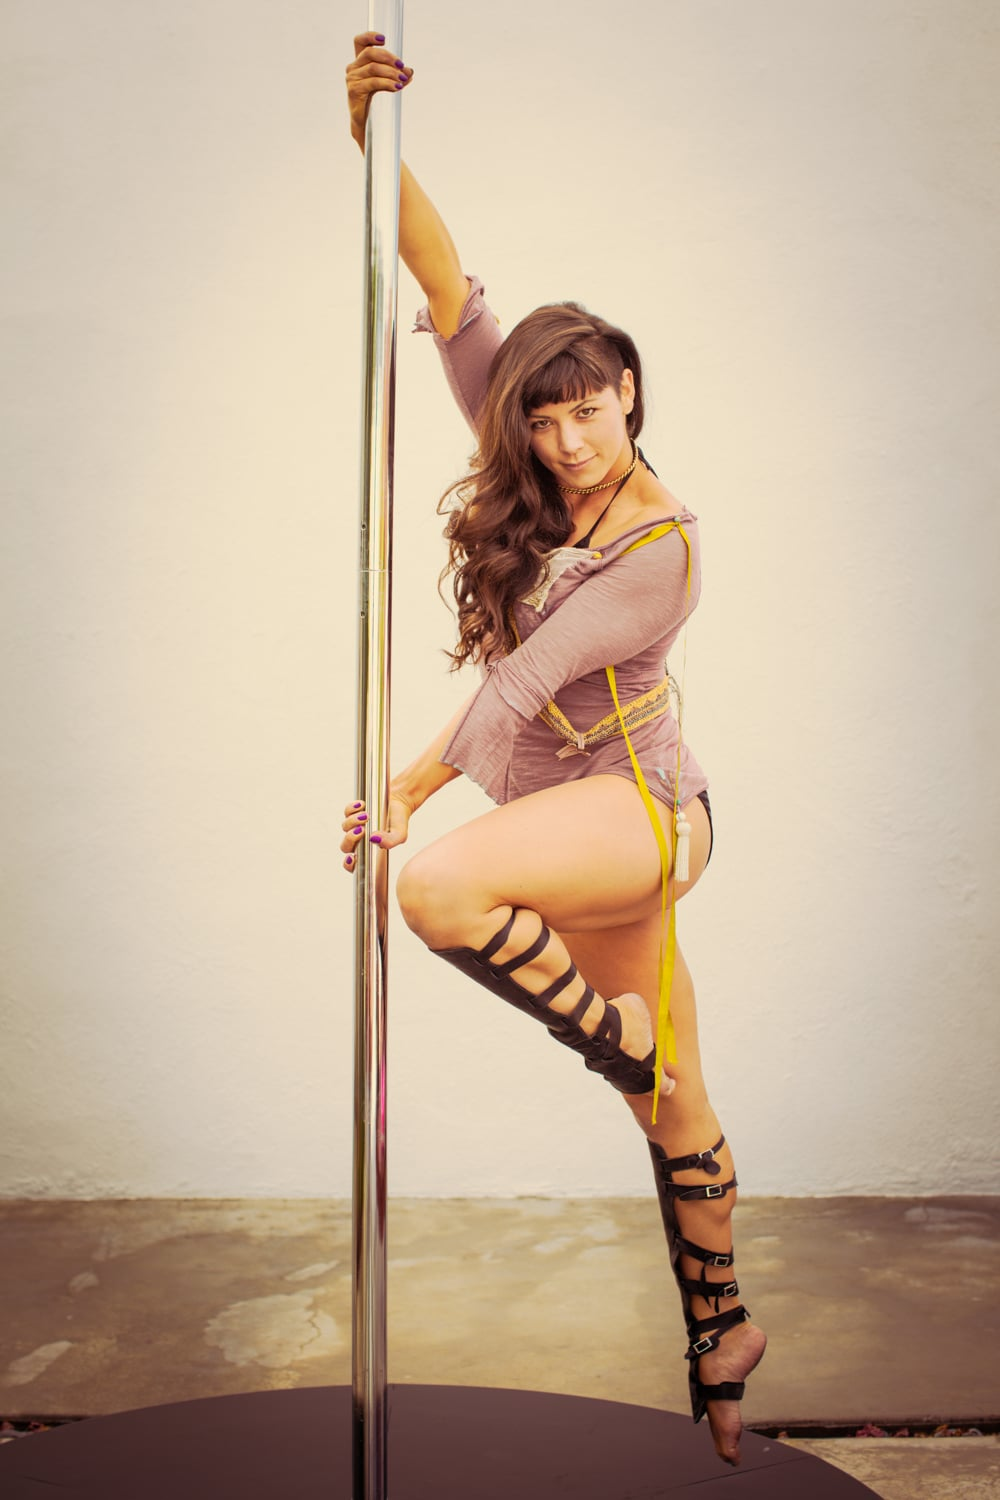 pole_couture_photos_by_gregory_beylerian-4